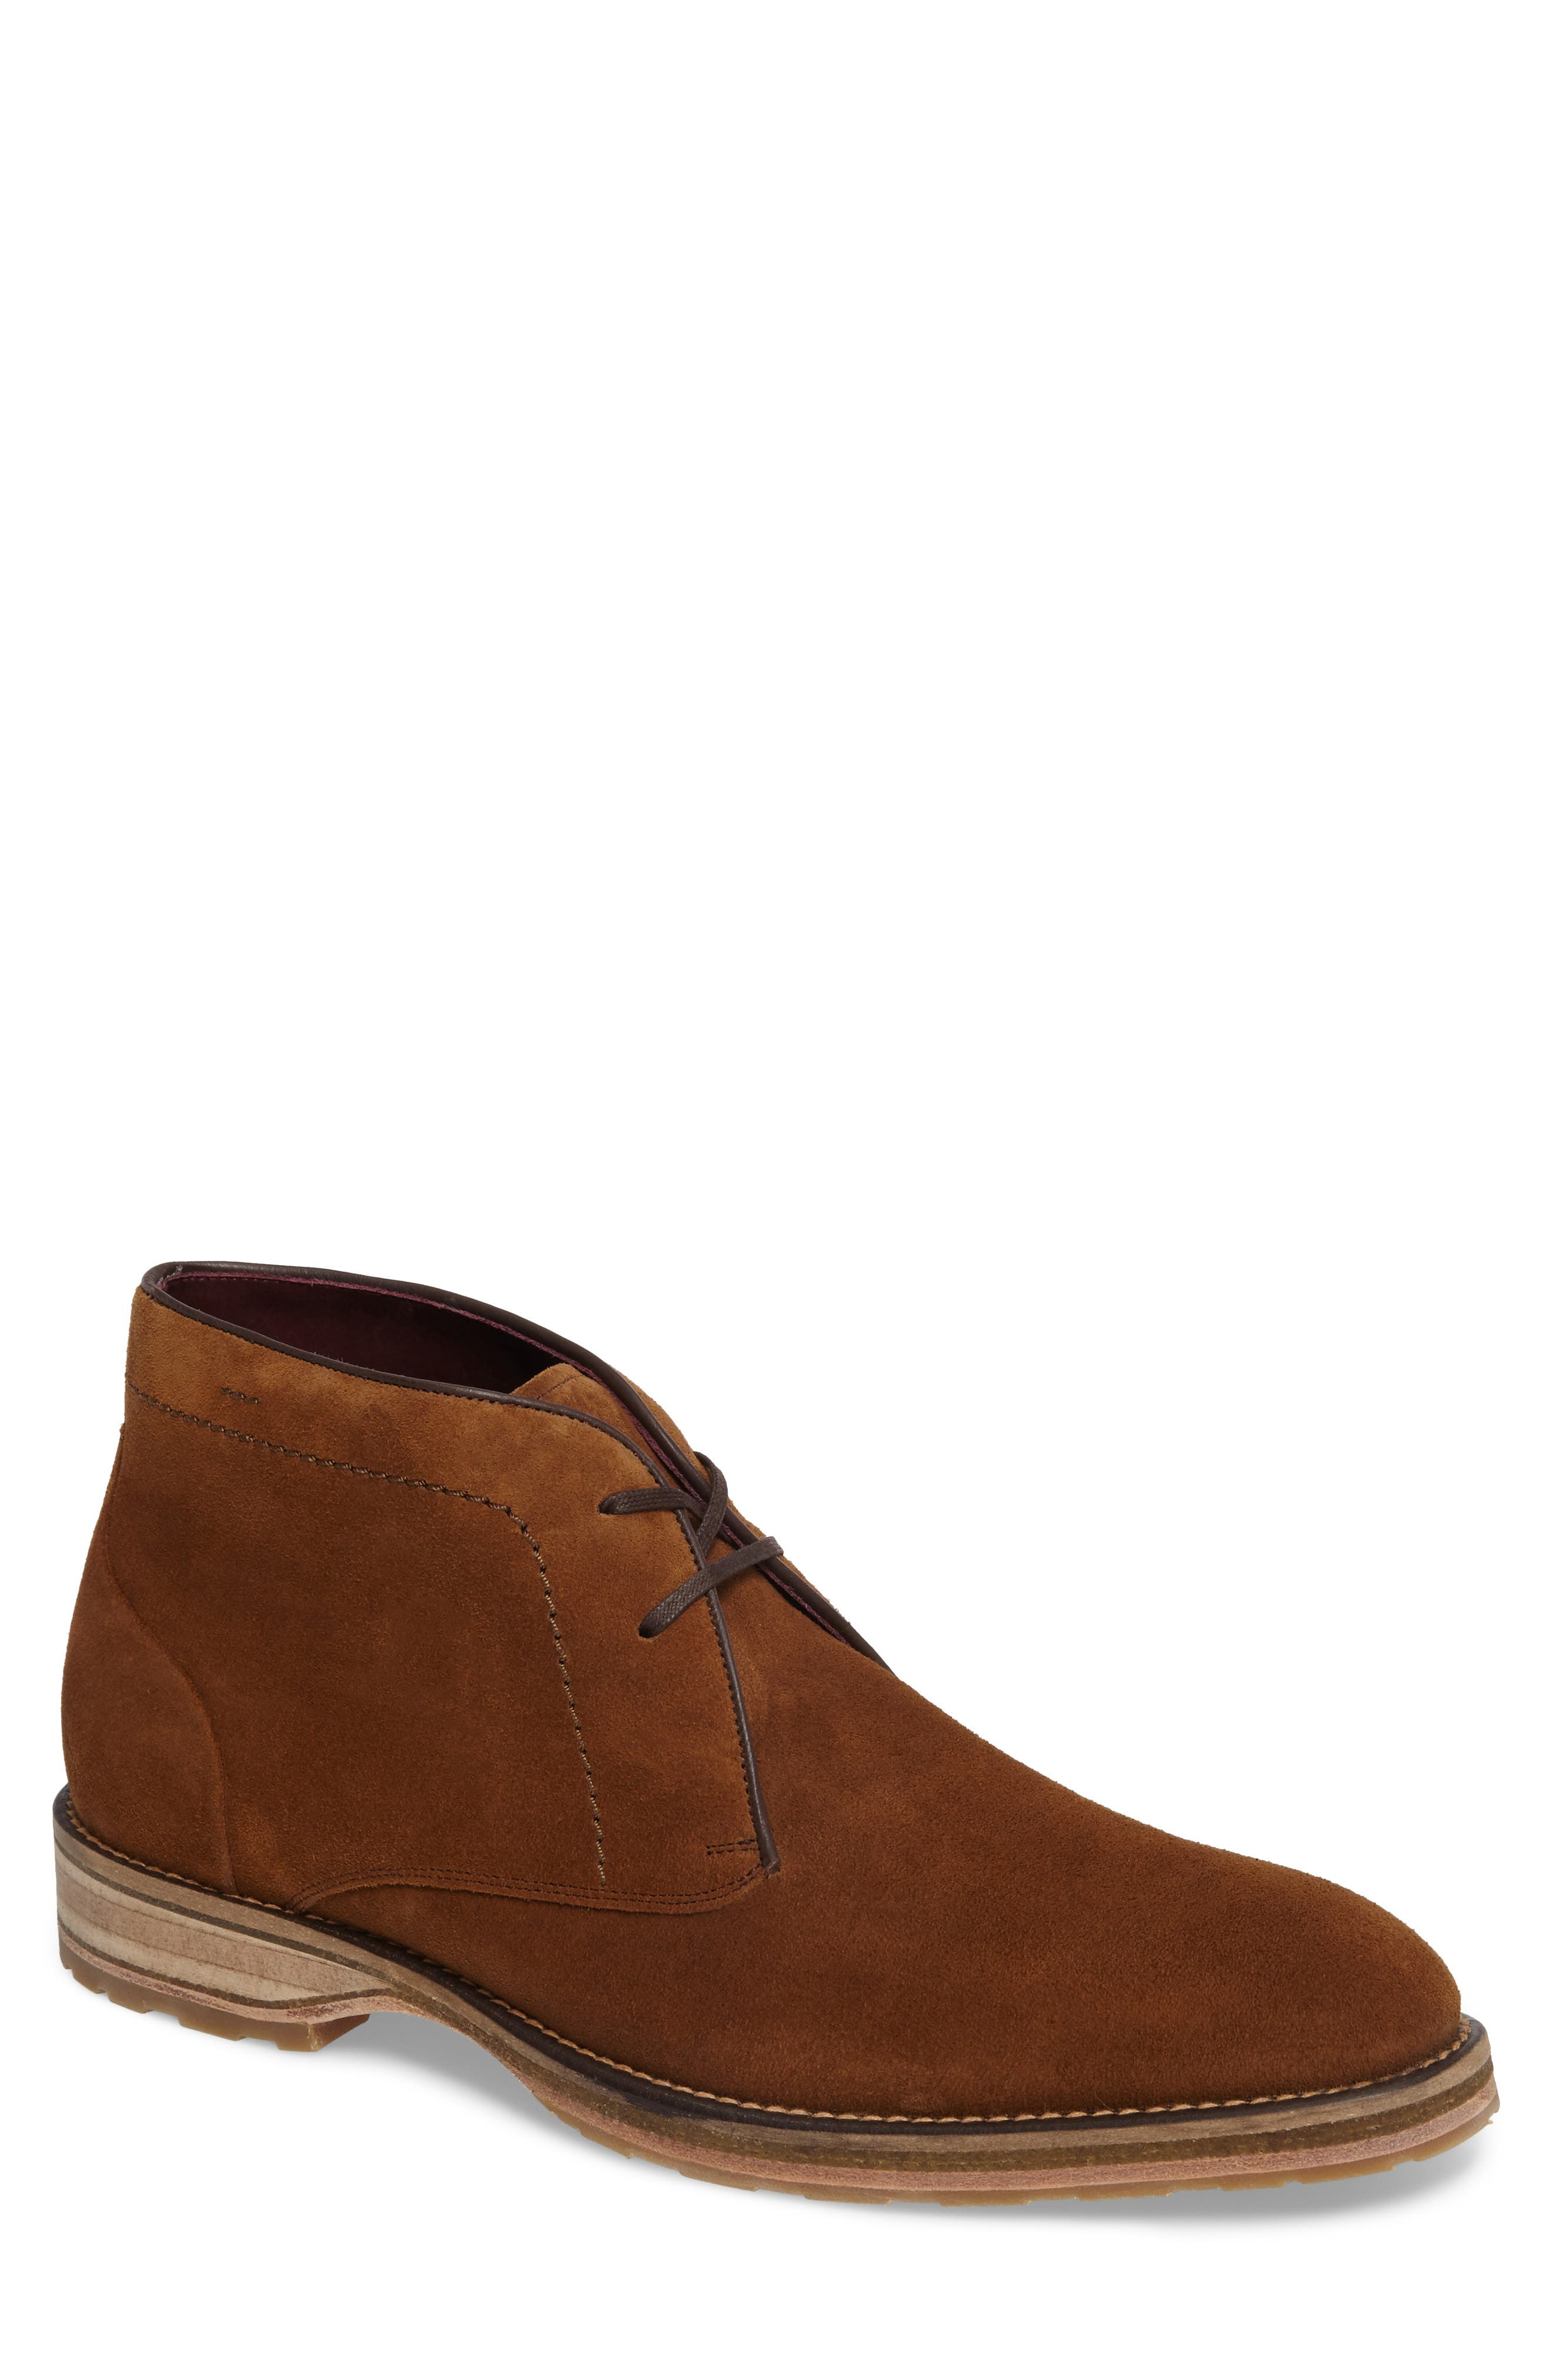 Mezlan Dalias Chukka Boot, Brown